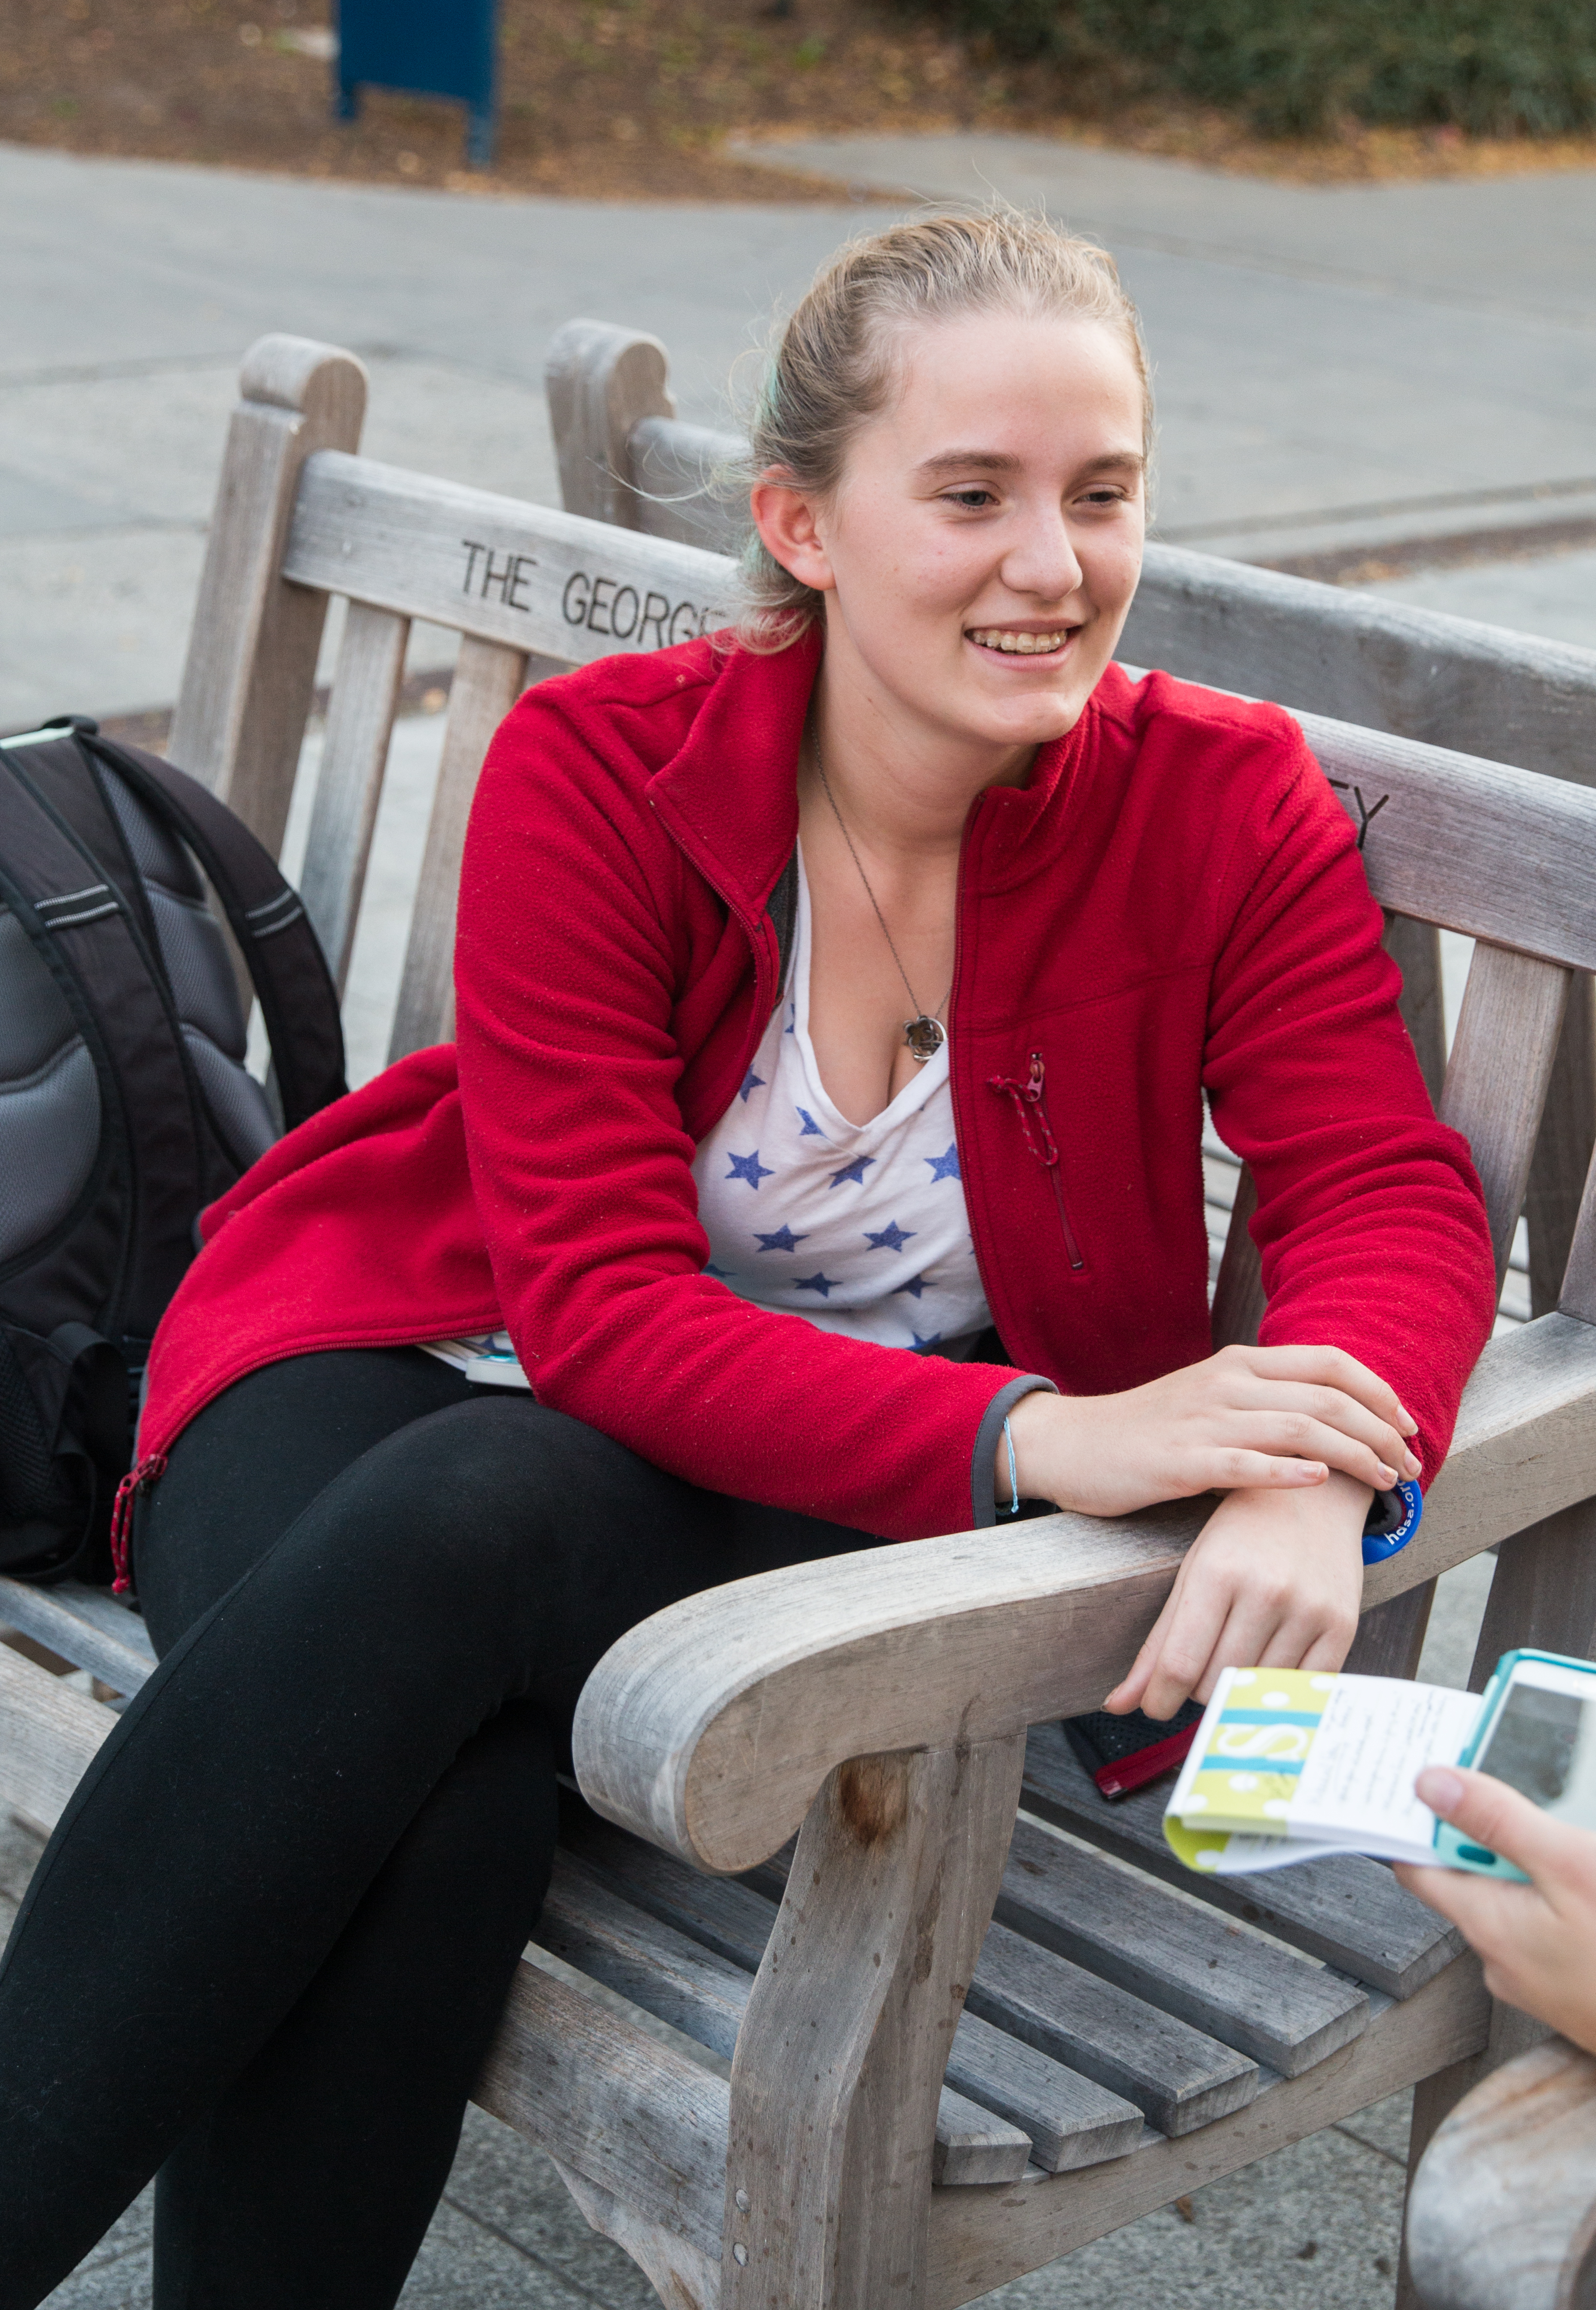 George Washington University student Nora Ripley-Grant talks about her opinions on the outcome of the election. (Maddi Driggs)